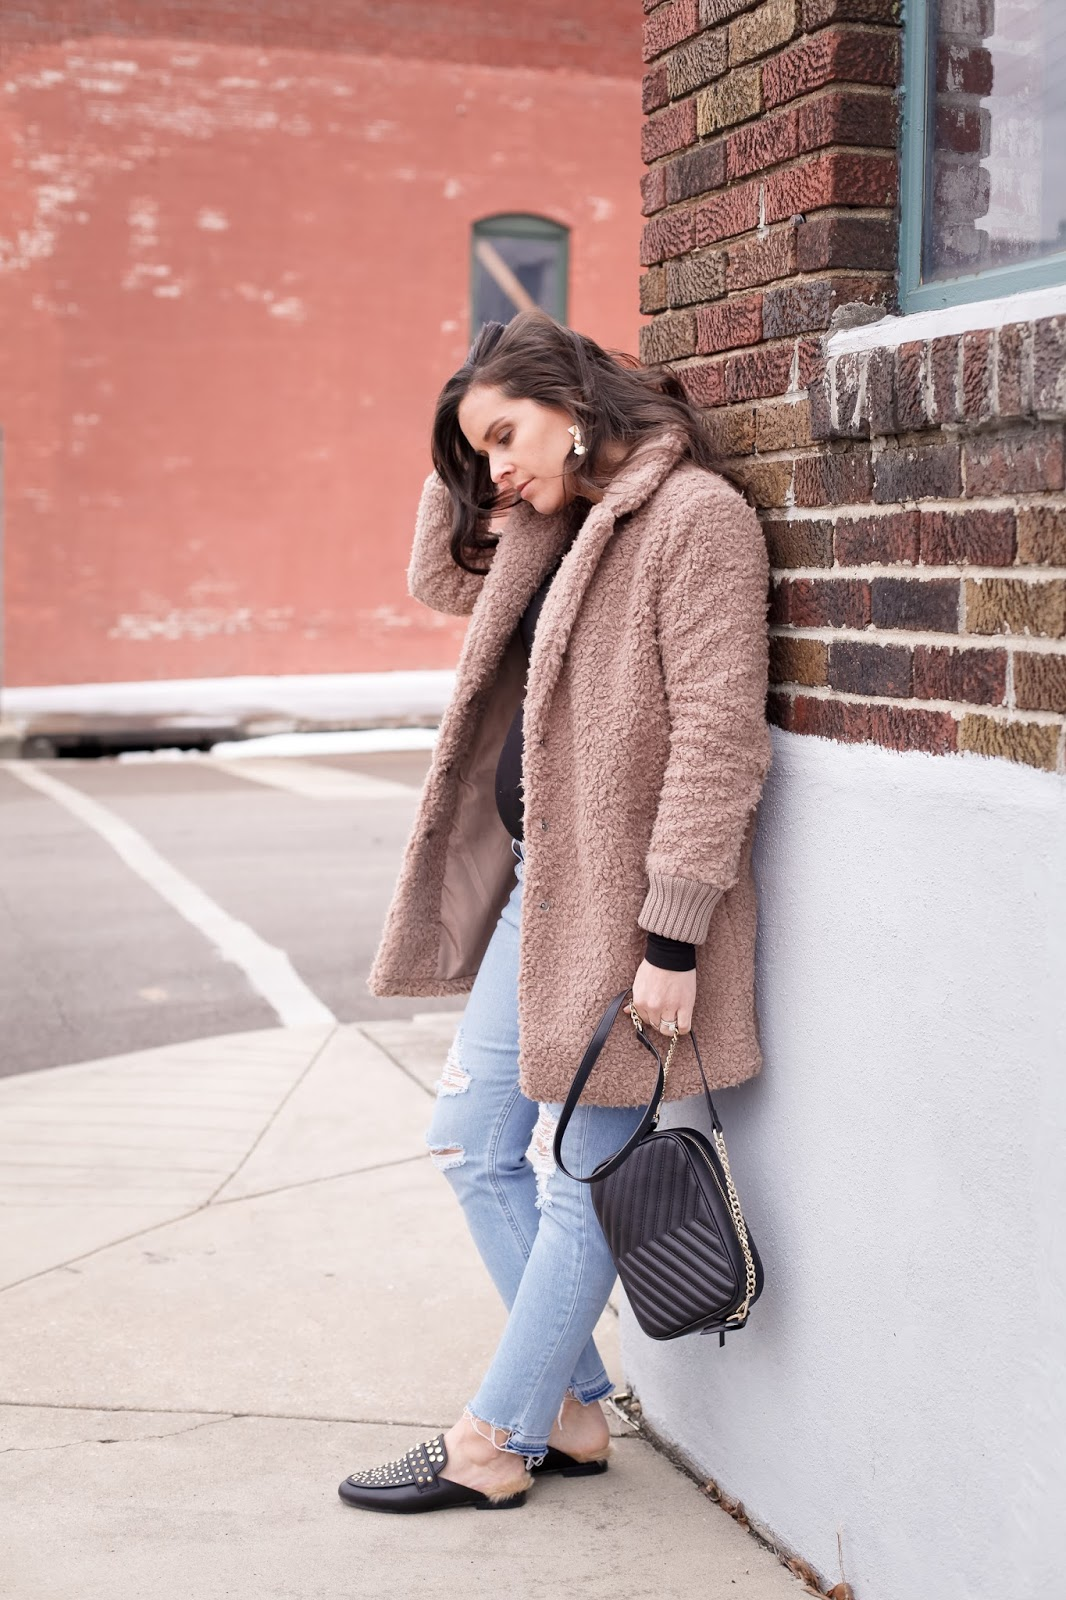 Styling a teddy coat with a baby bump